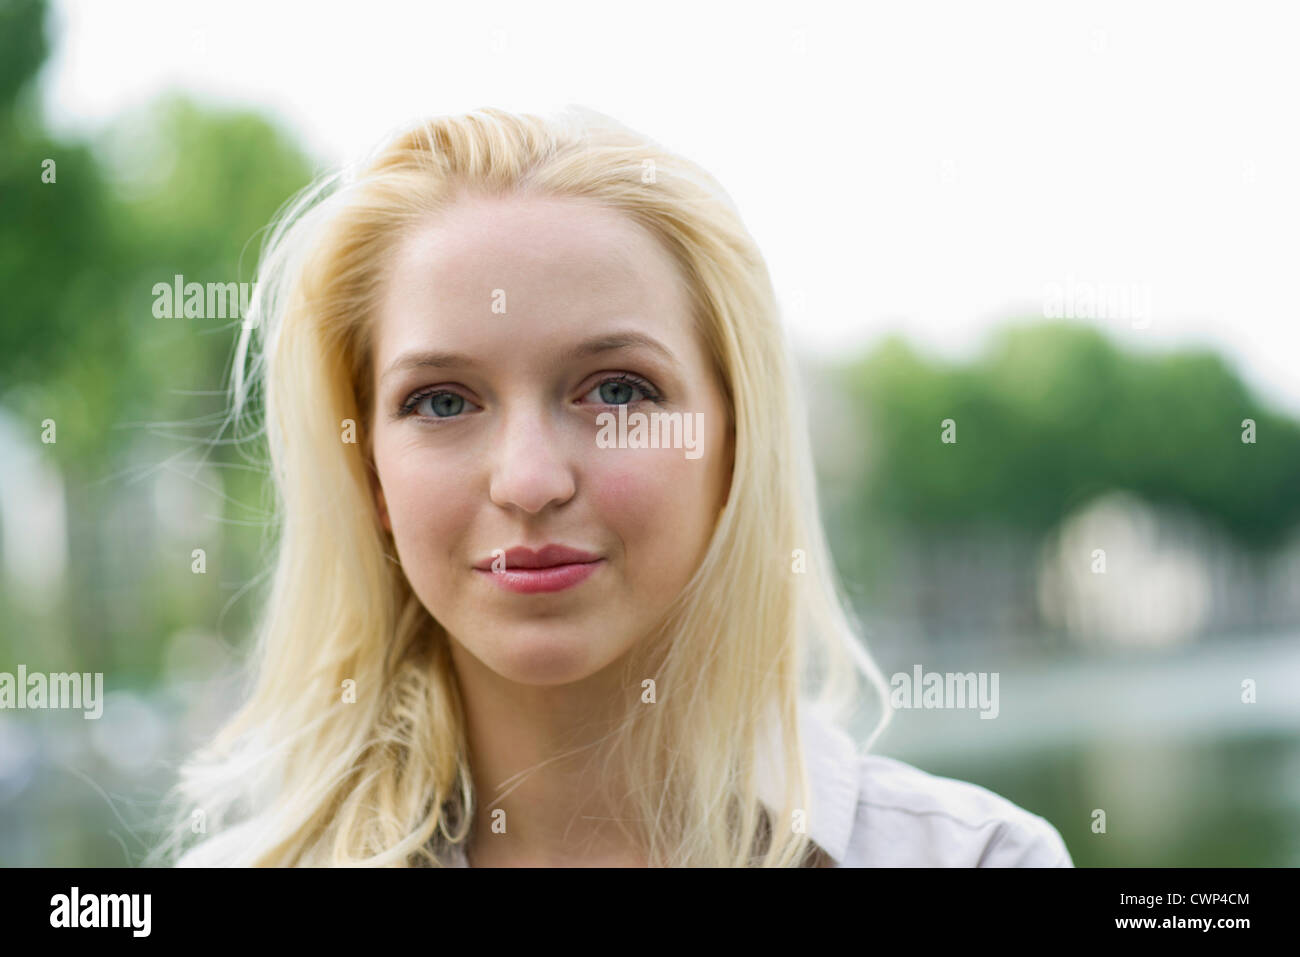 Young woman outdoors, portrait - Stock Image